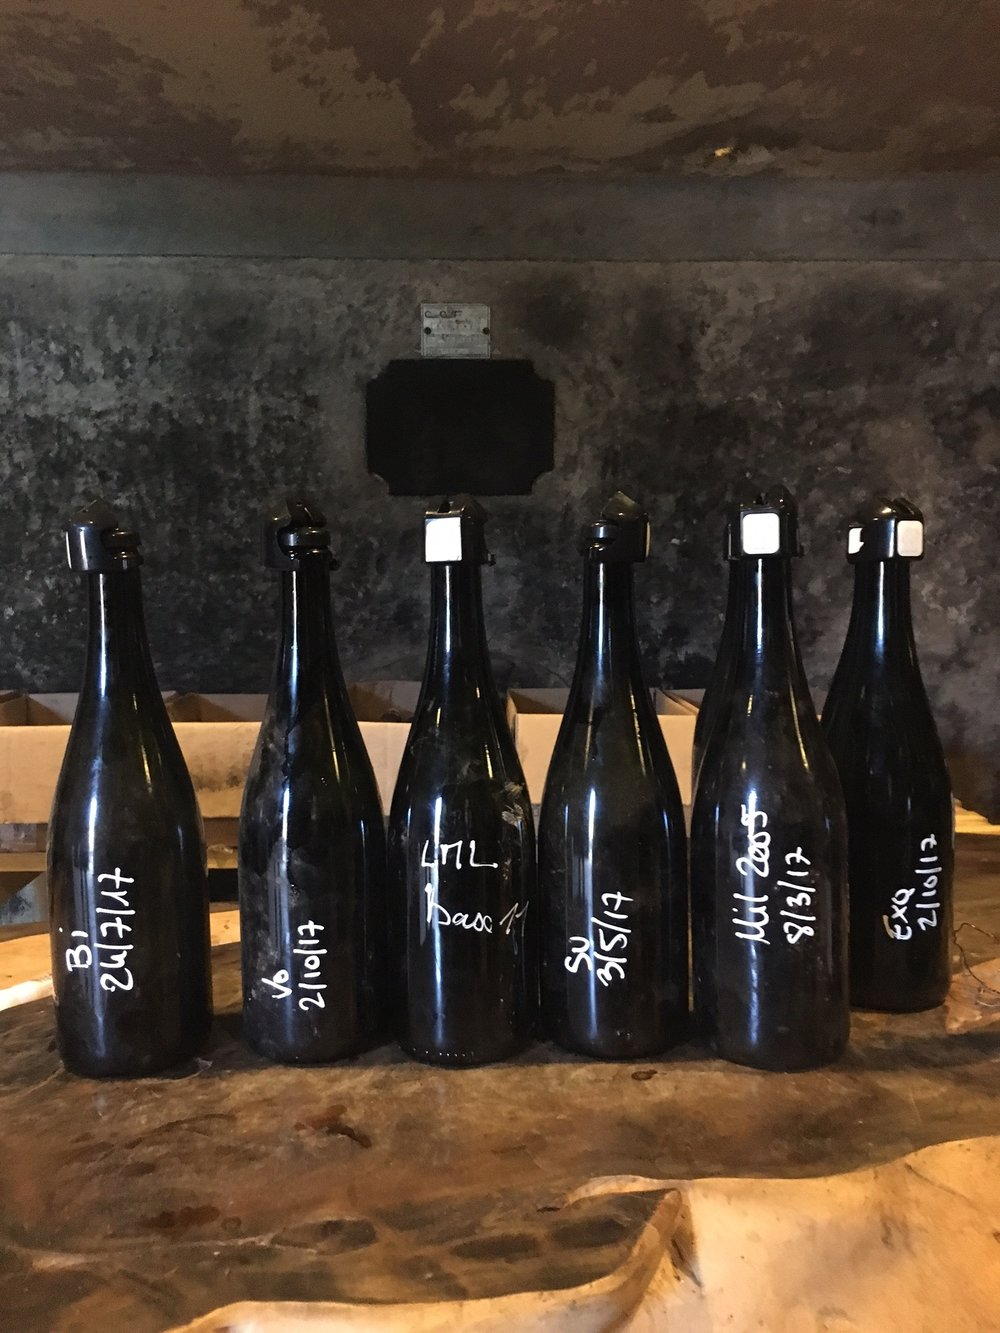 a lineup of Selosse wines (unlabeled)